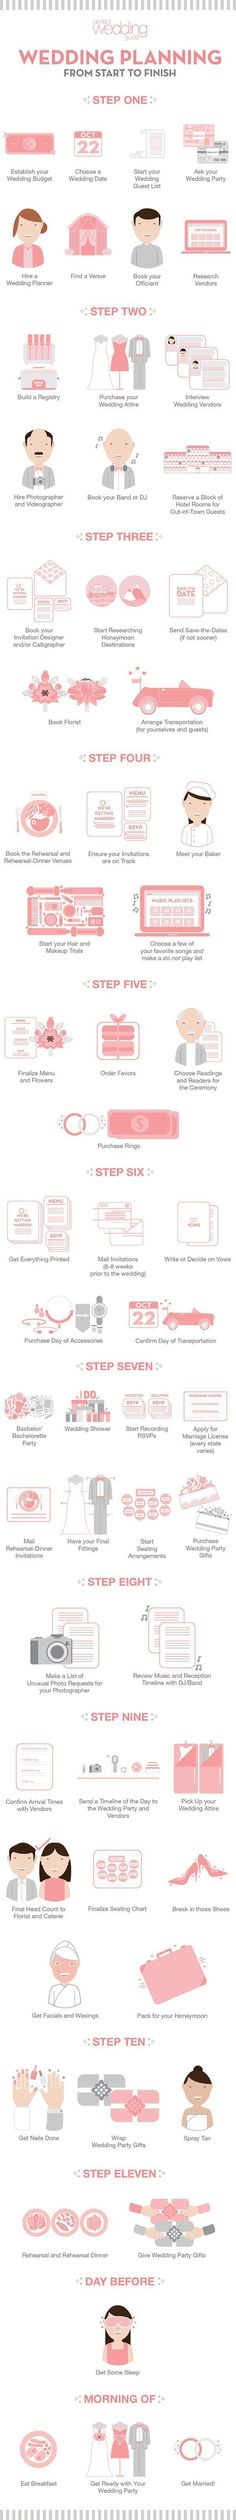 Infographic: Wedding Planning Timeline #weddingplanningtimeline #weddinginfographic